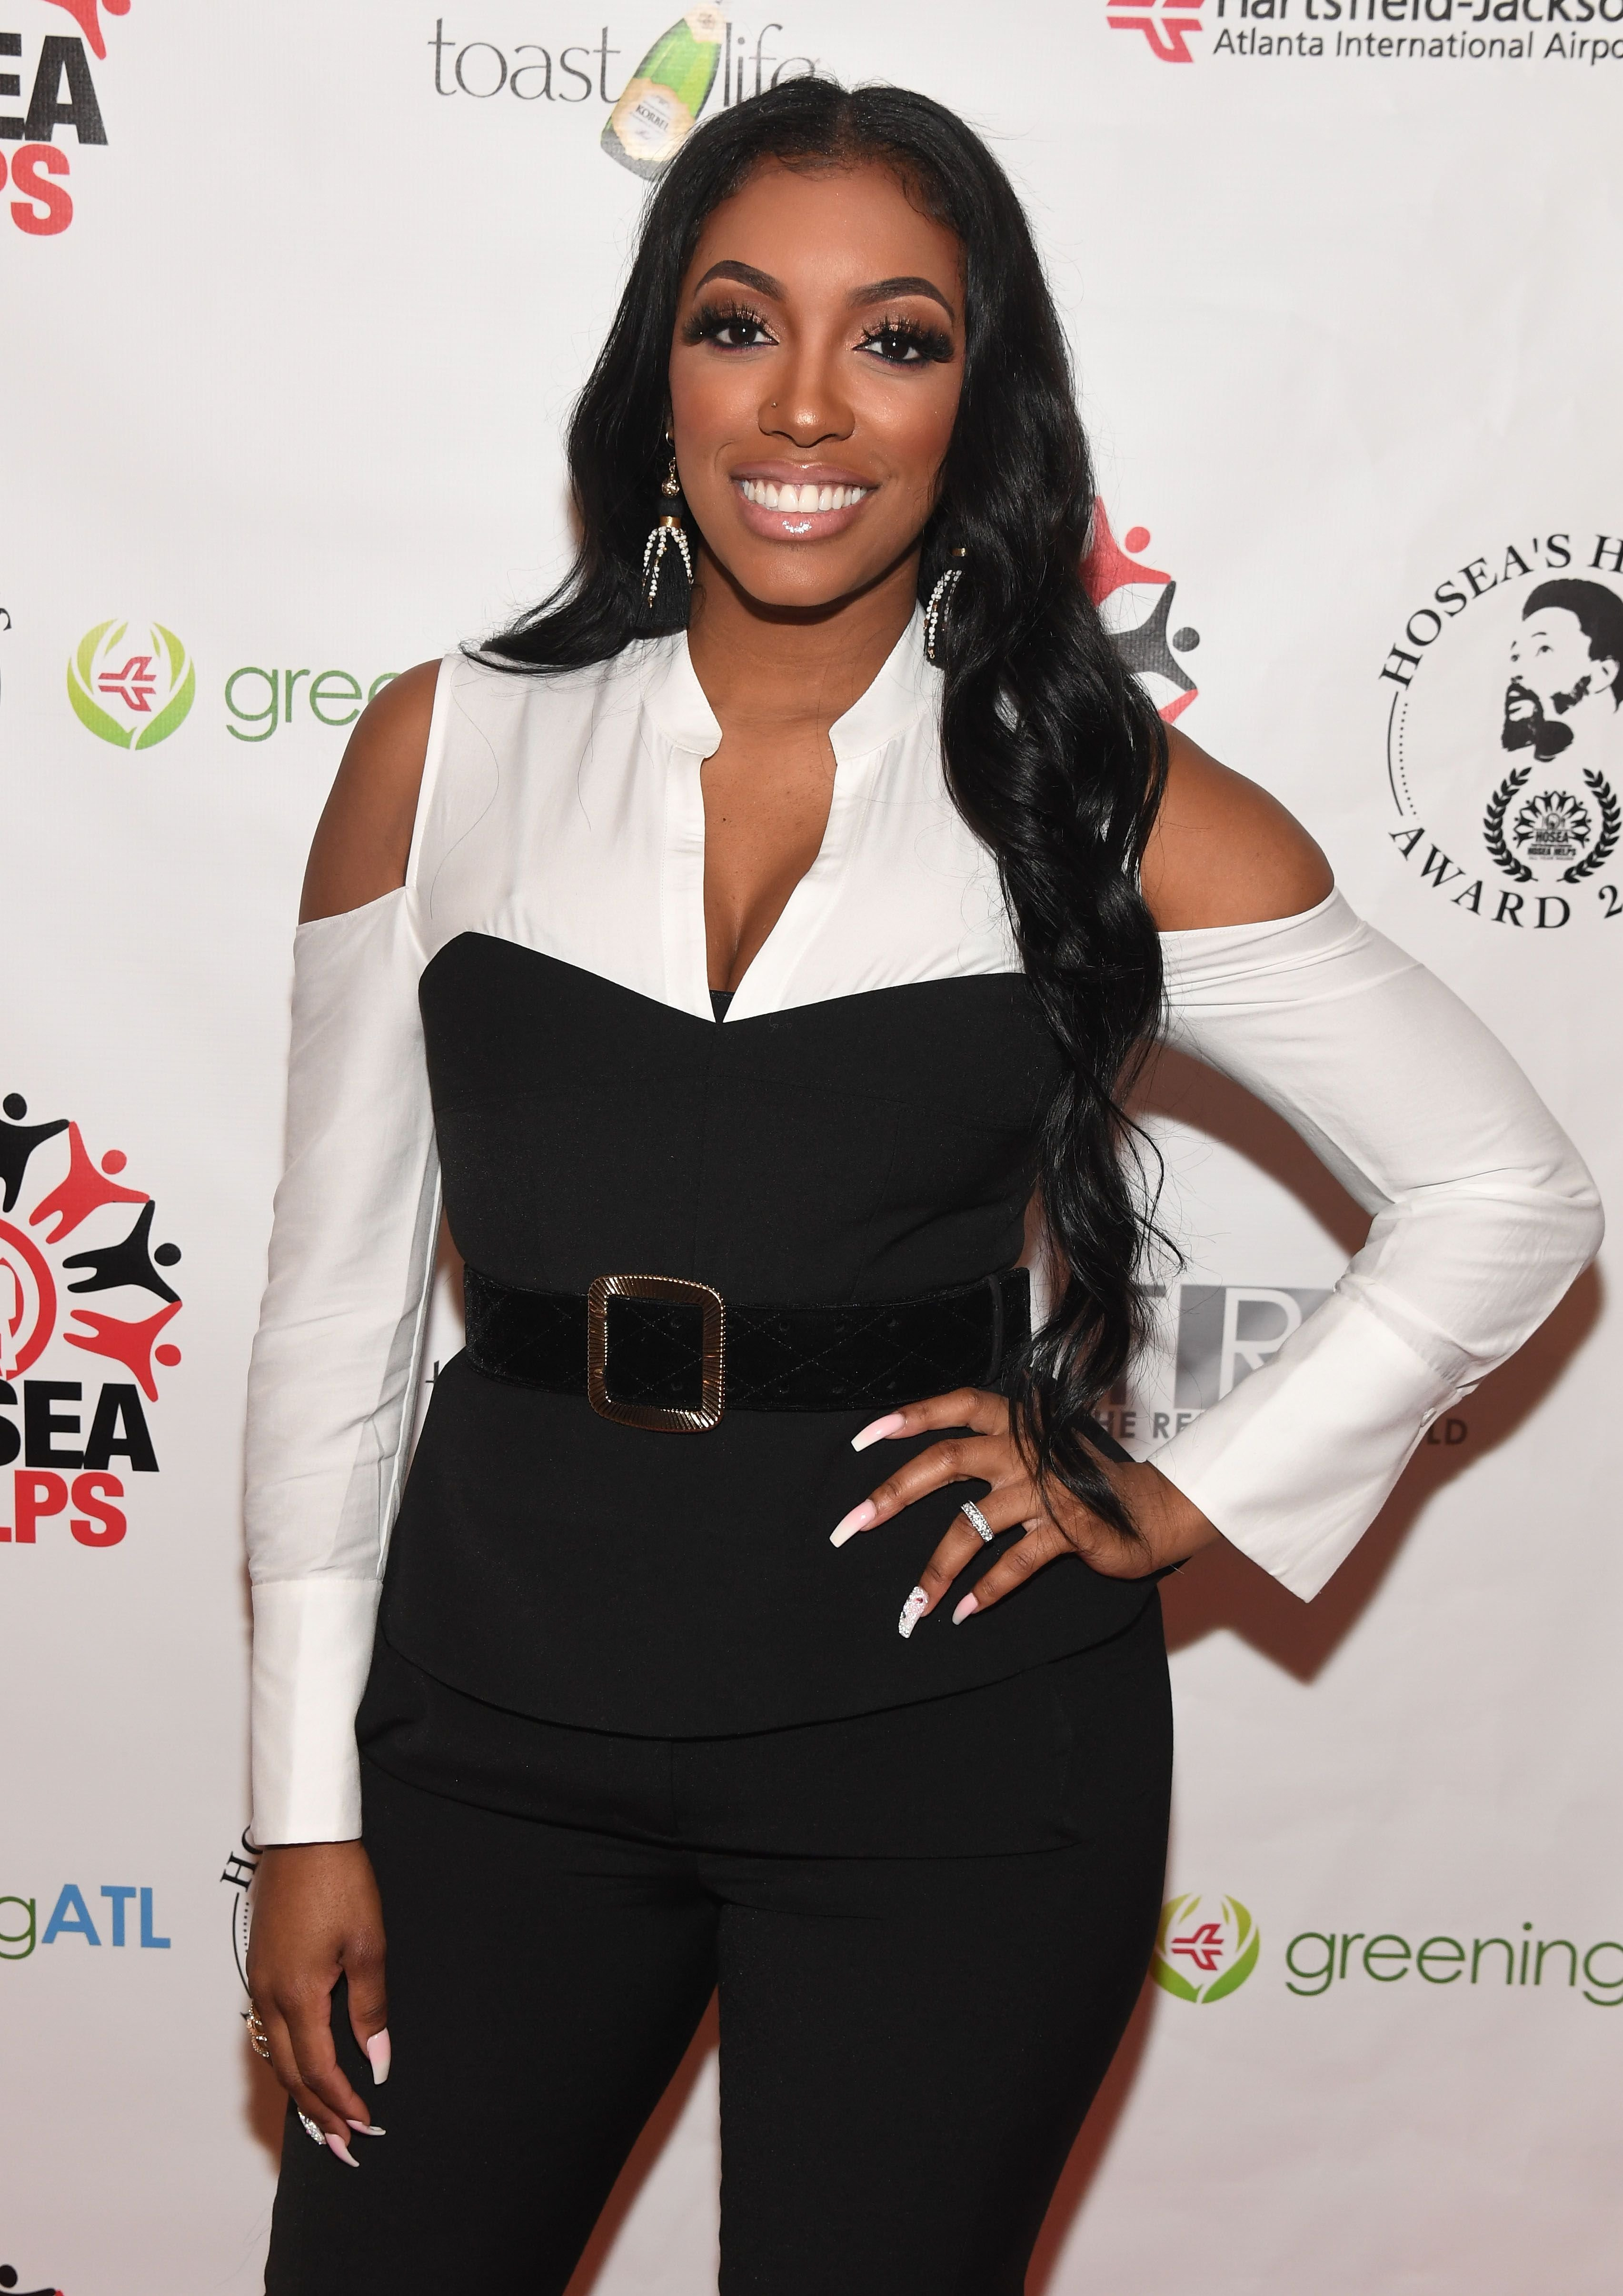 TV personality Porsha Williams at the 2018 Hosea's Heroes Awards at Loudermilk Conference Center on February 25, 2018 in Atlanta, Georgia. | Photo: Getty Images